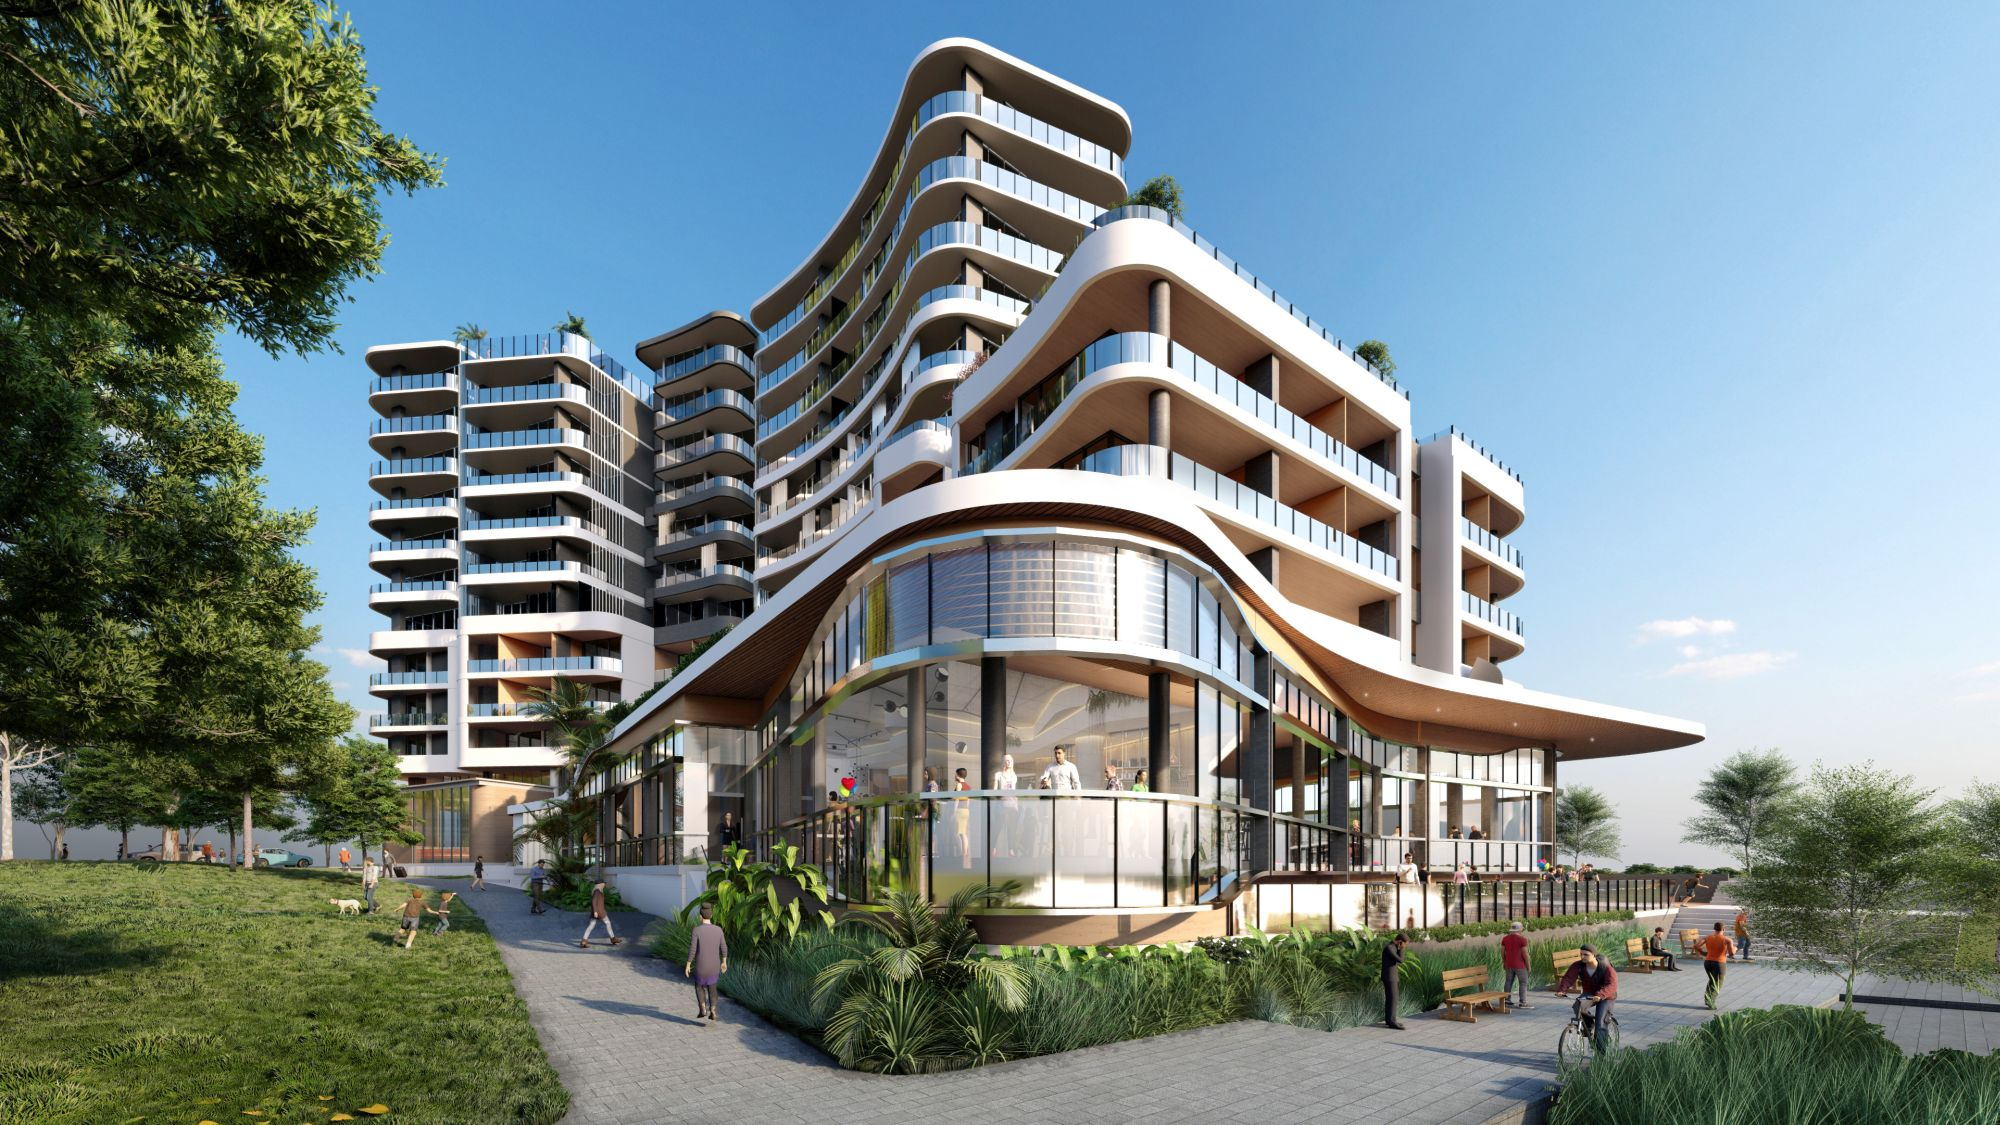 The Waterfront, Shell Cove Hotel by Oscars Hotel, Frasers Property Australia, Shellharbour City Council